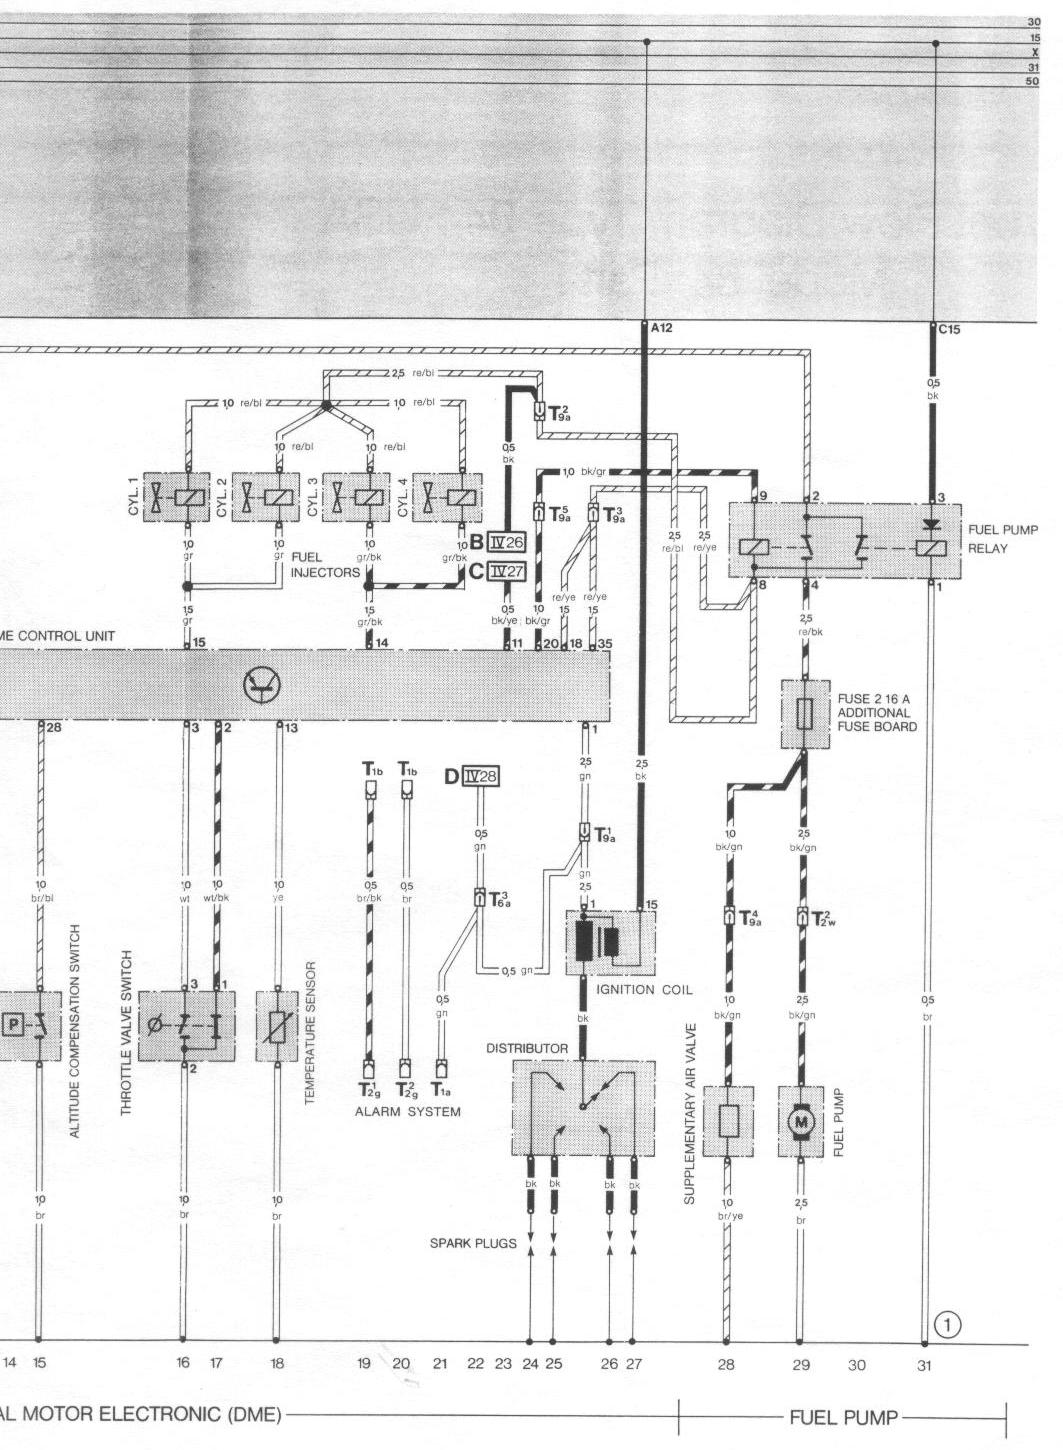 944_84_1_2 pelican parts porsche 924 944 electrical diagrams 1986 porsche 944 fuse box diagram at crackthecode.co